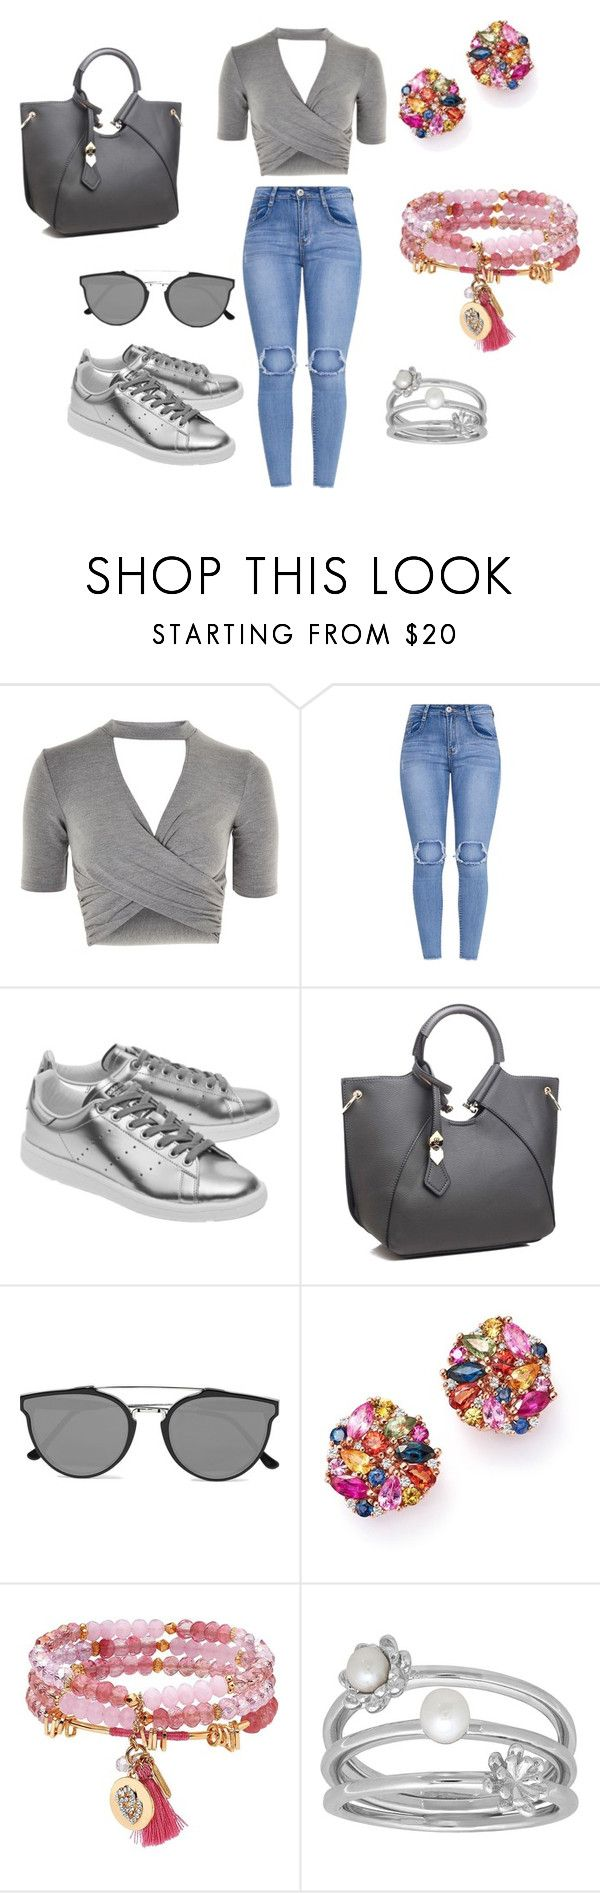 """""""Multicolor grey"""" by elisa-itgirl ❤ liked on Polyvore featuring Topshop, adidas Originals, RetroSuperFuture, Bloomingdale's, Lonna & Lilly and Lord & Taylor"""